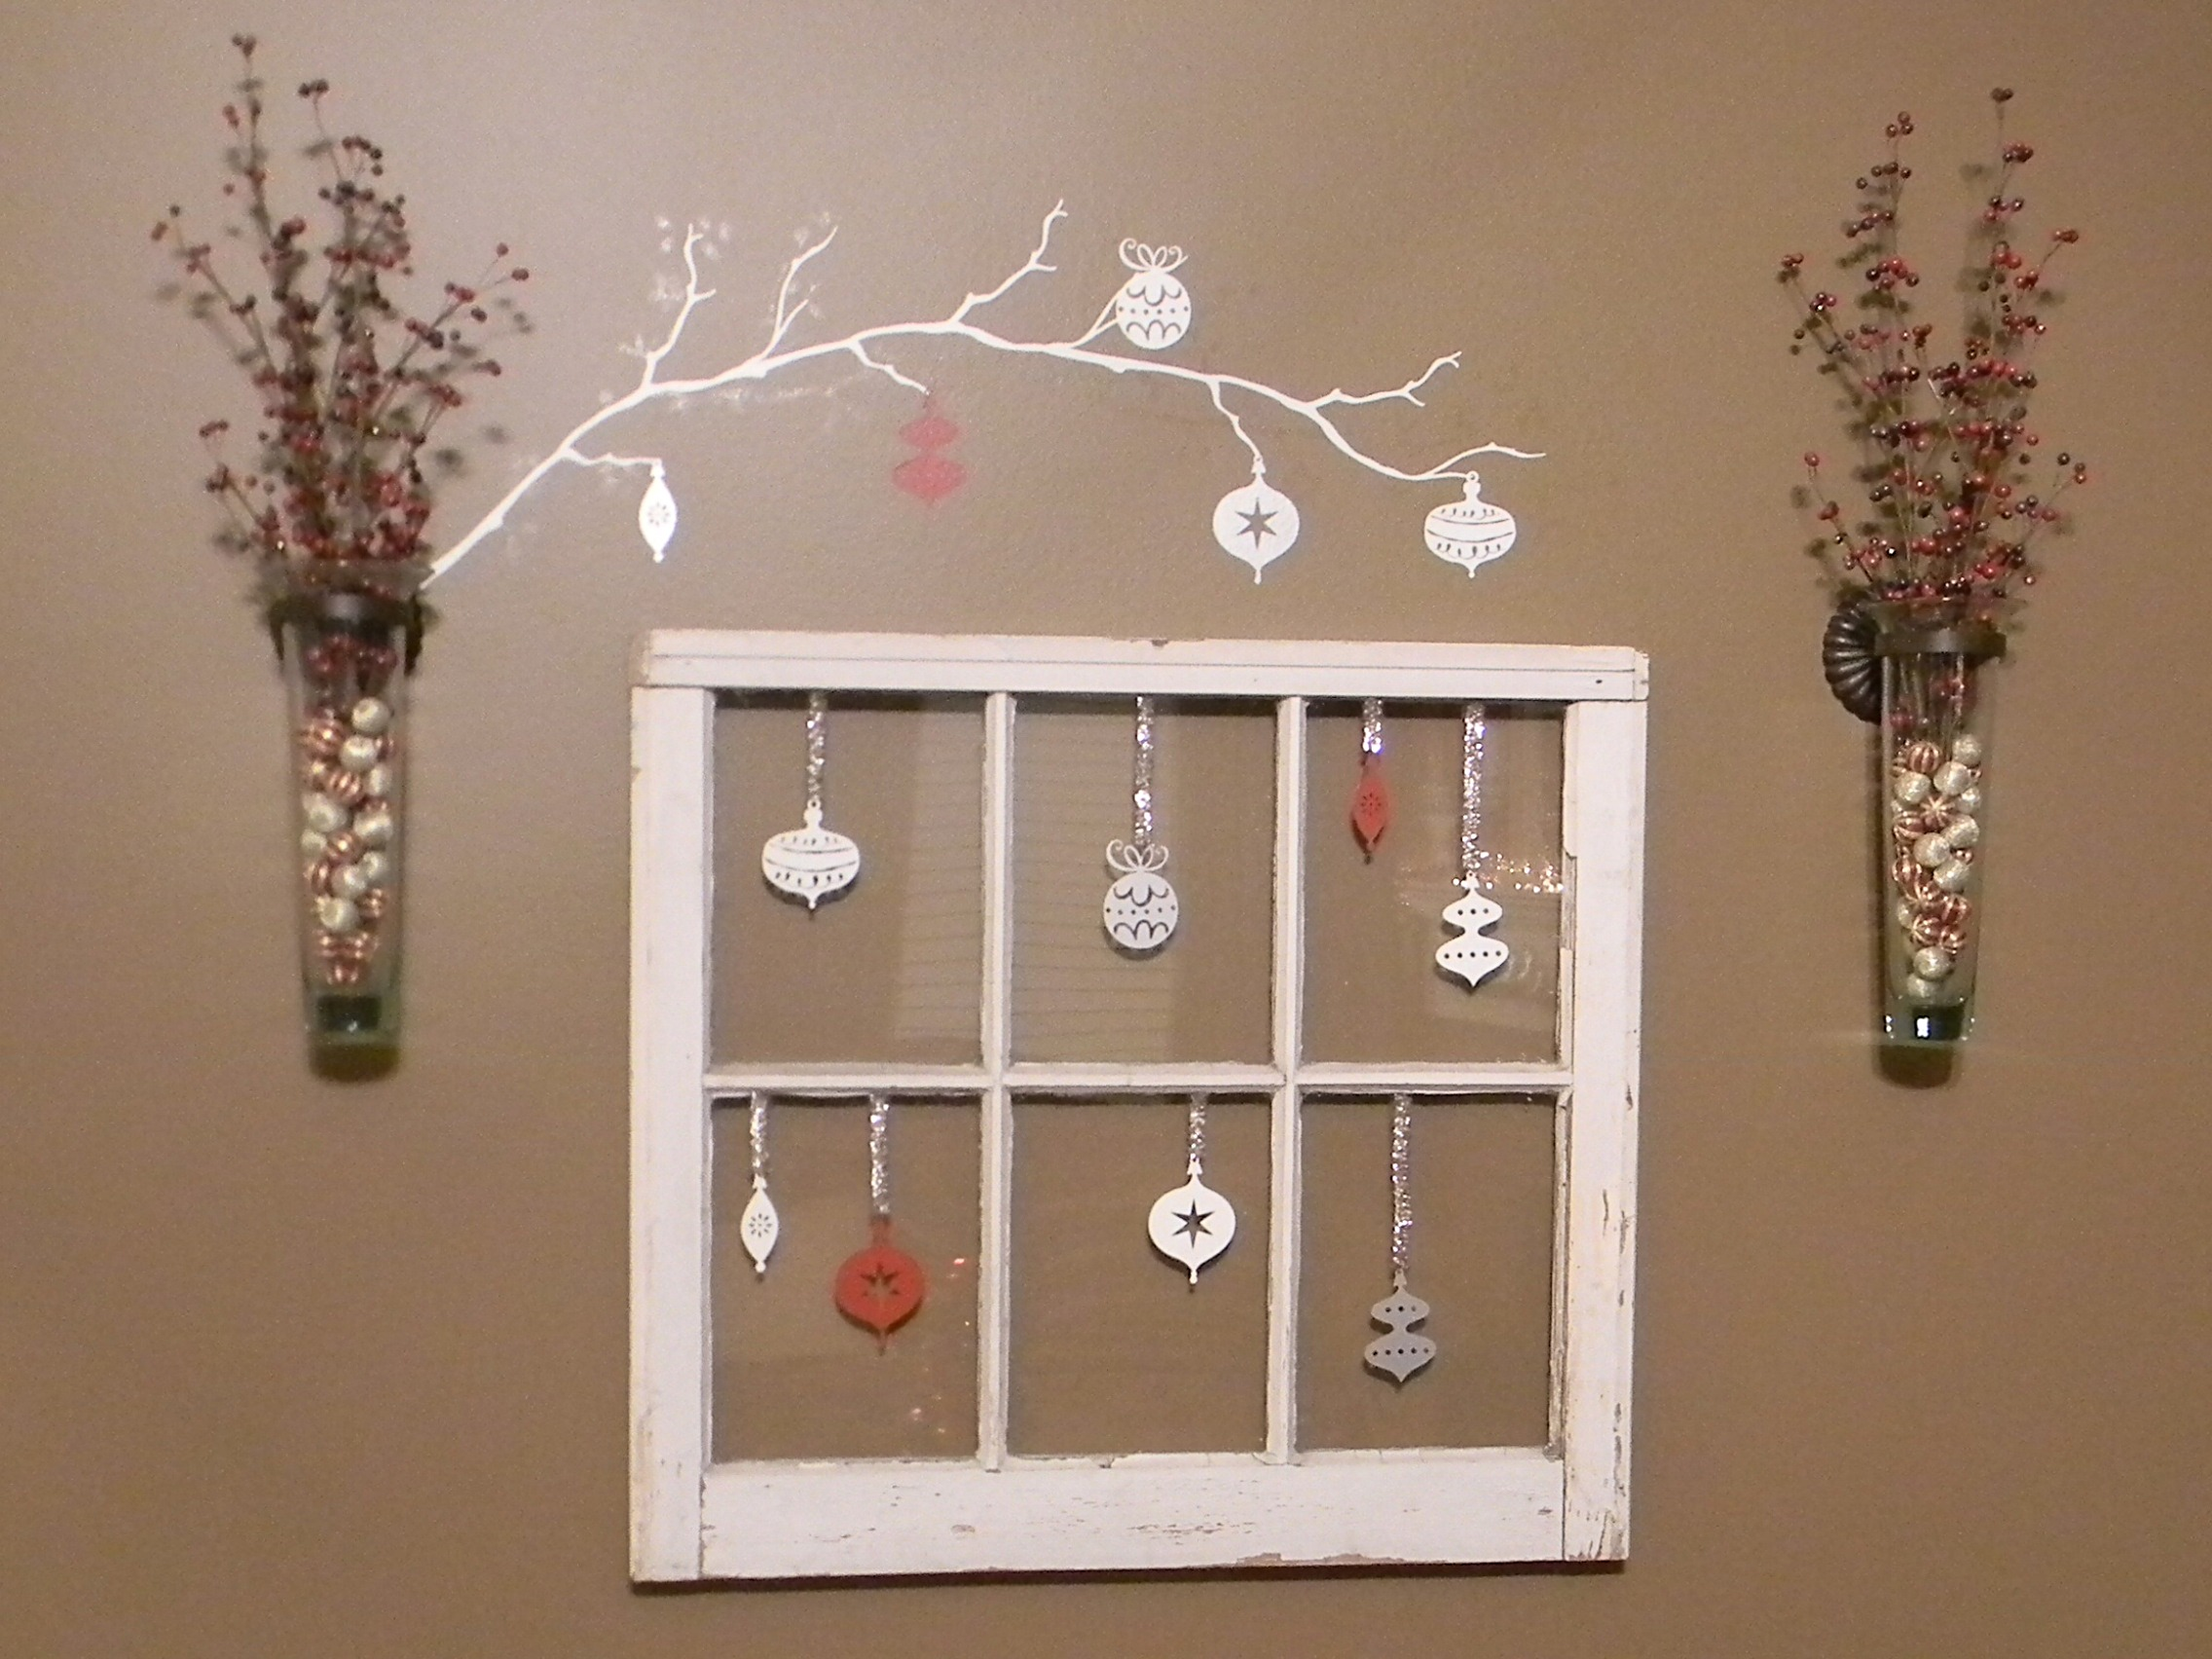 Christmas window organize and decorate everything - Decoraciones de paredes ...